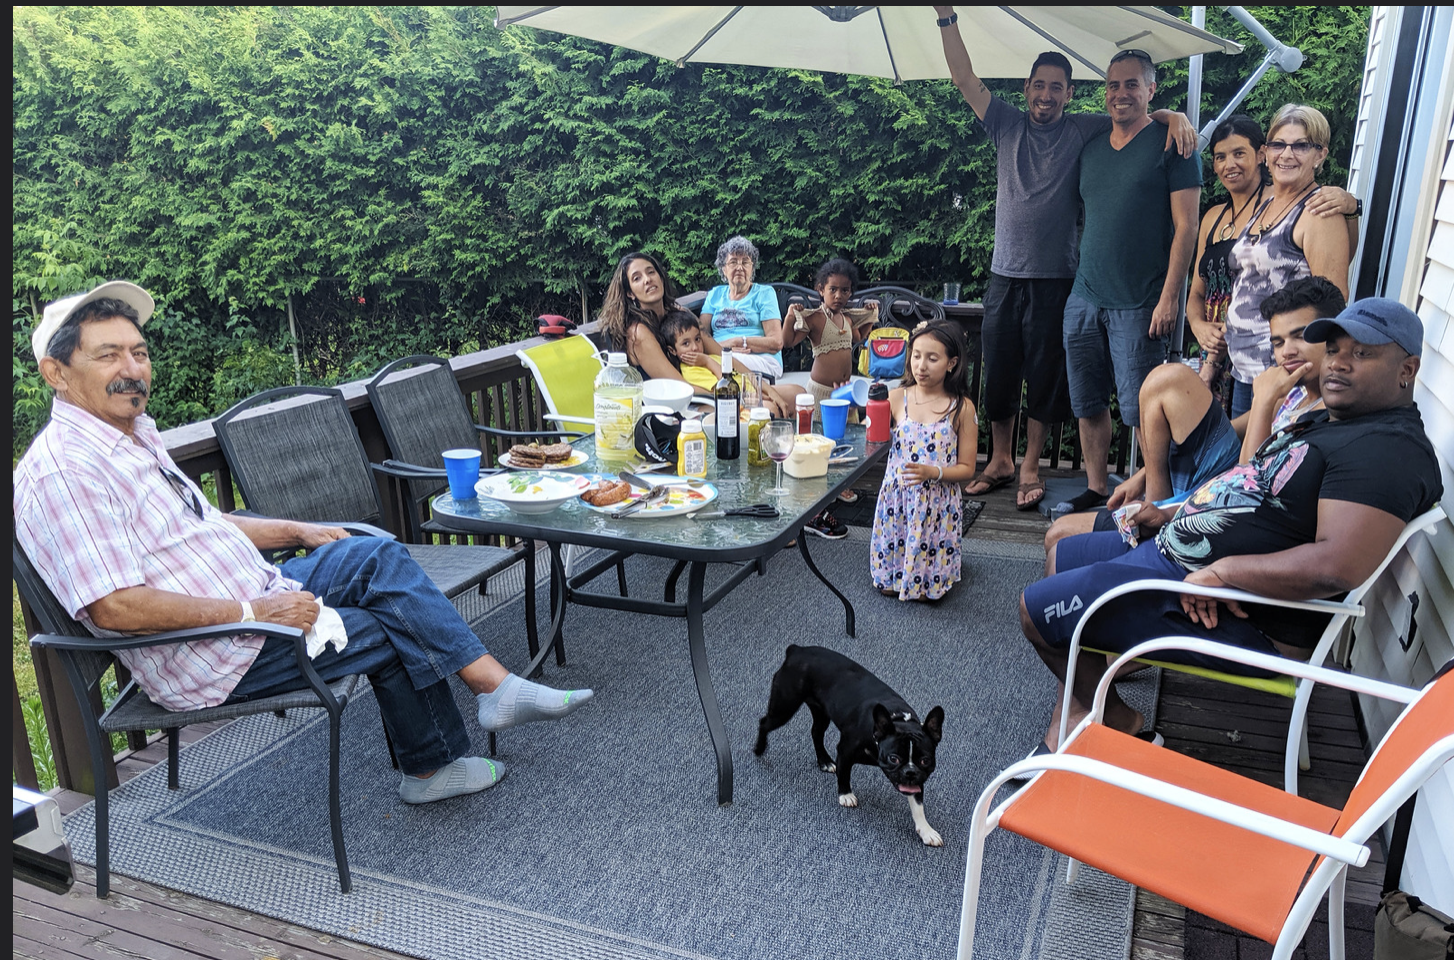 """Friends and family enjoying a """"decent standard of living"""" July 6, 2019, Ottawa, Ontario, Canada. (Photo by lezumbalaberenjena) Creative Commons license via Flickr)"""